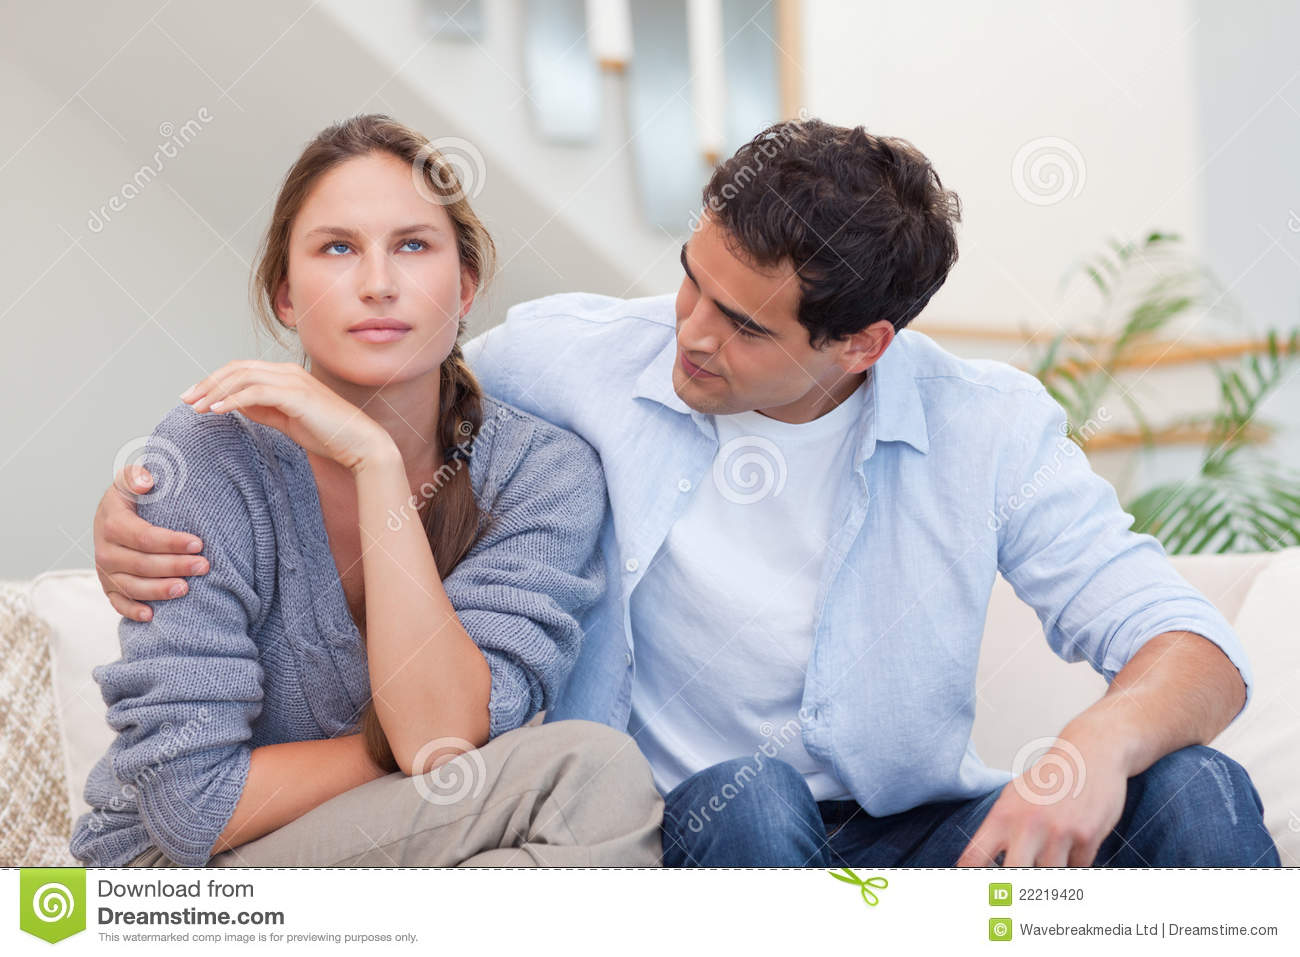 Woman being mad at her husband